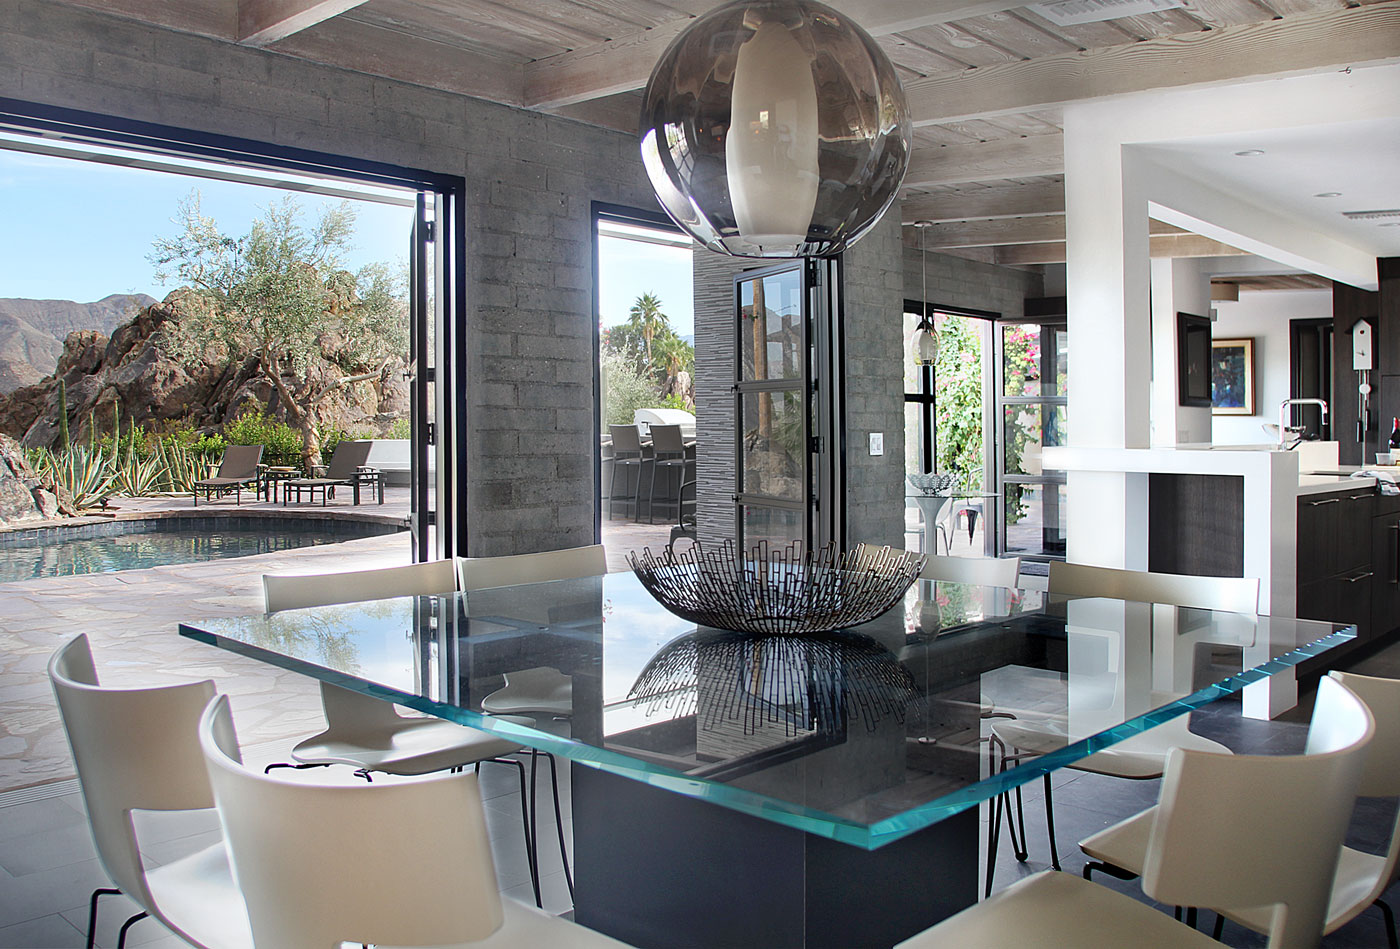 05 Dining+room+with+french+doors+opening+to+oasis+pool+and+unobstructed+views+of+mountains